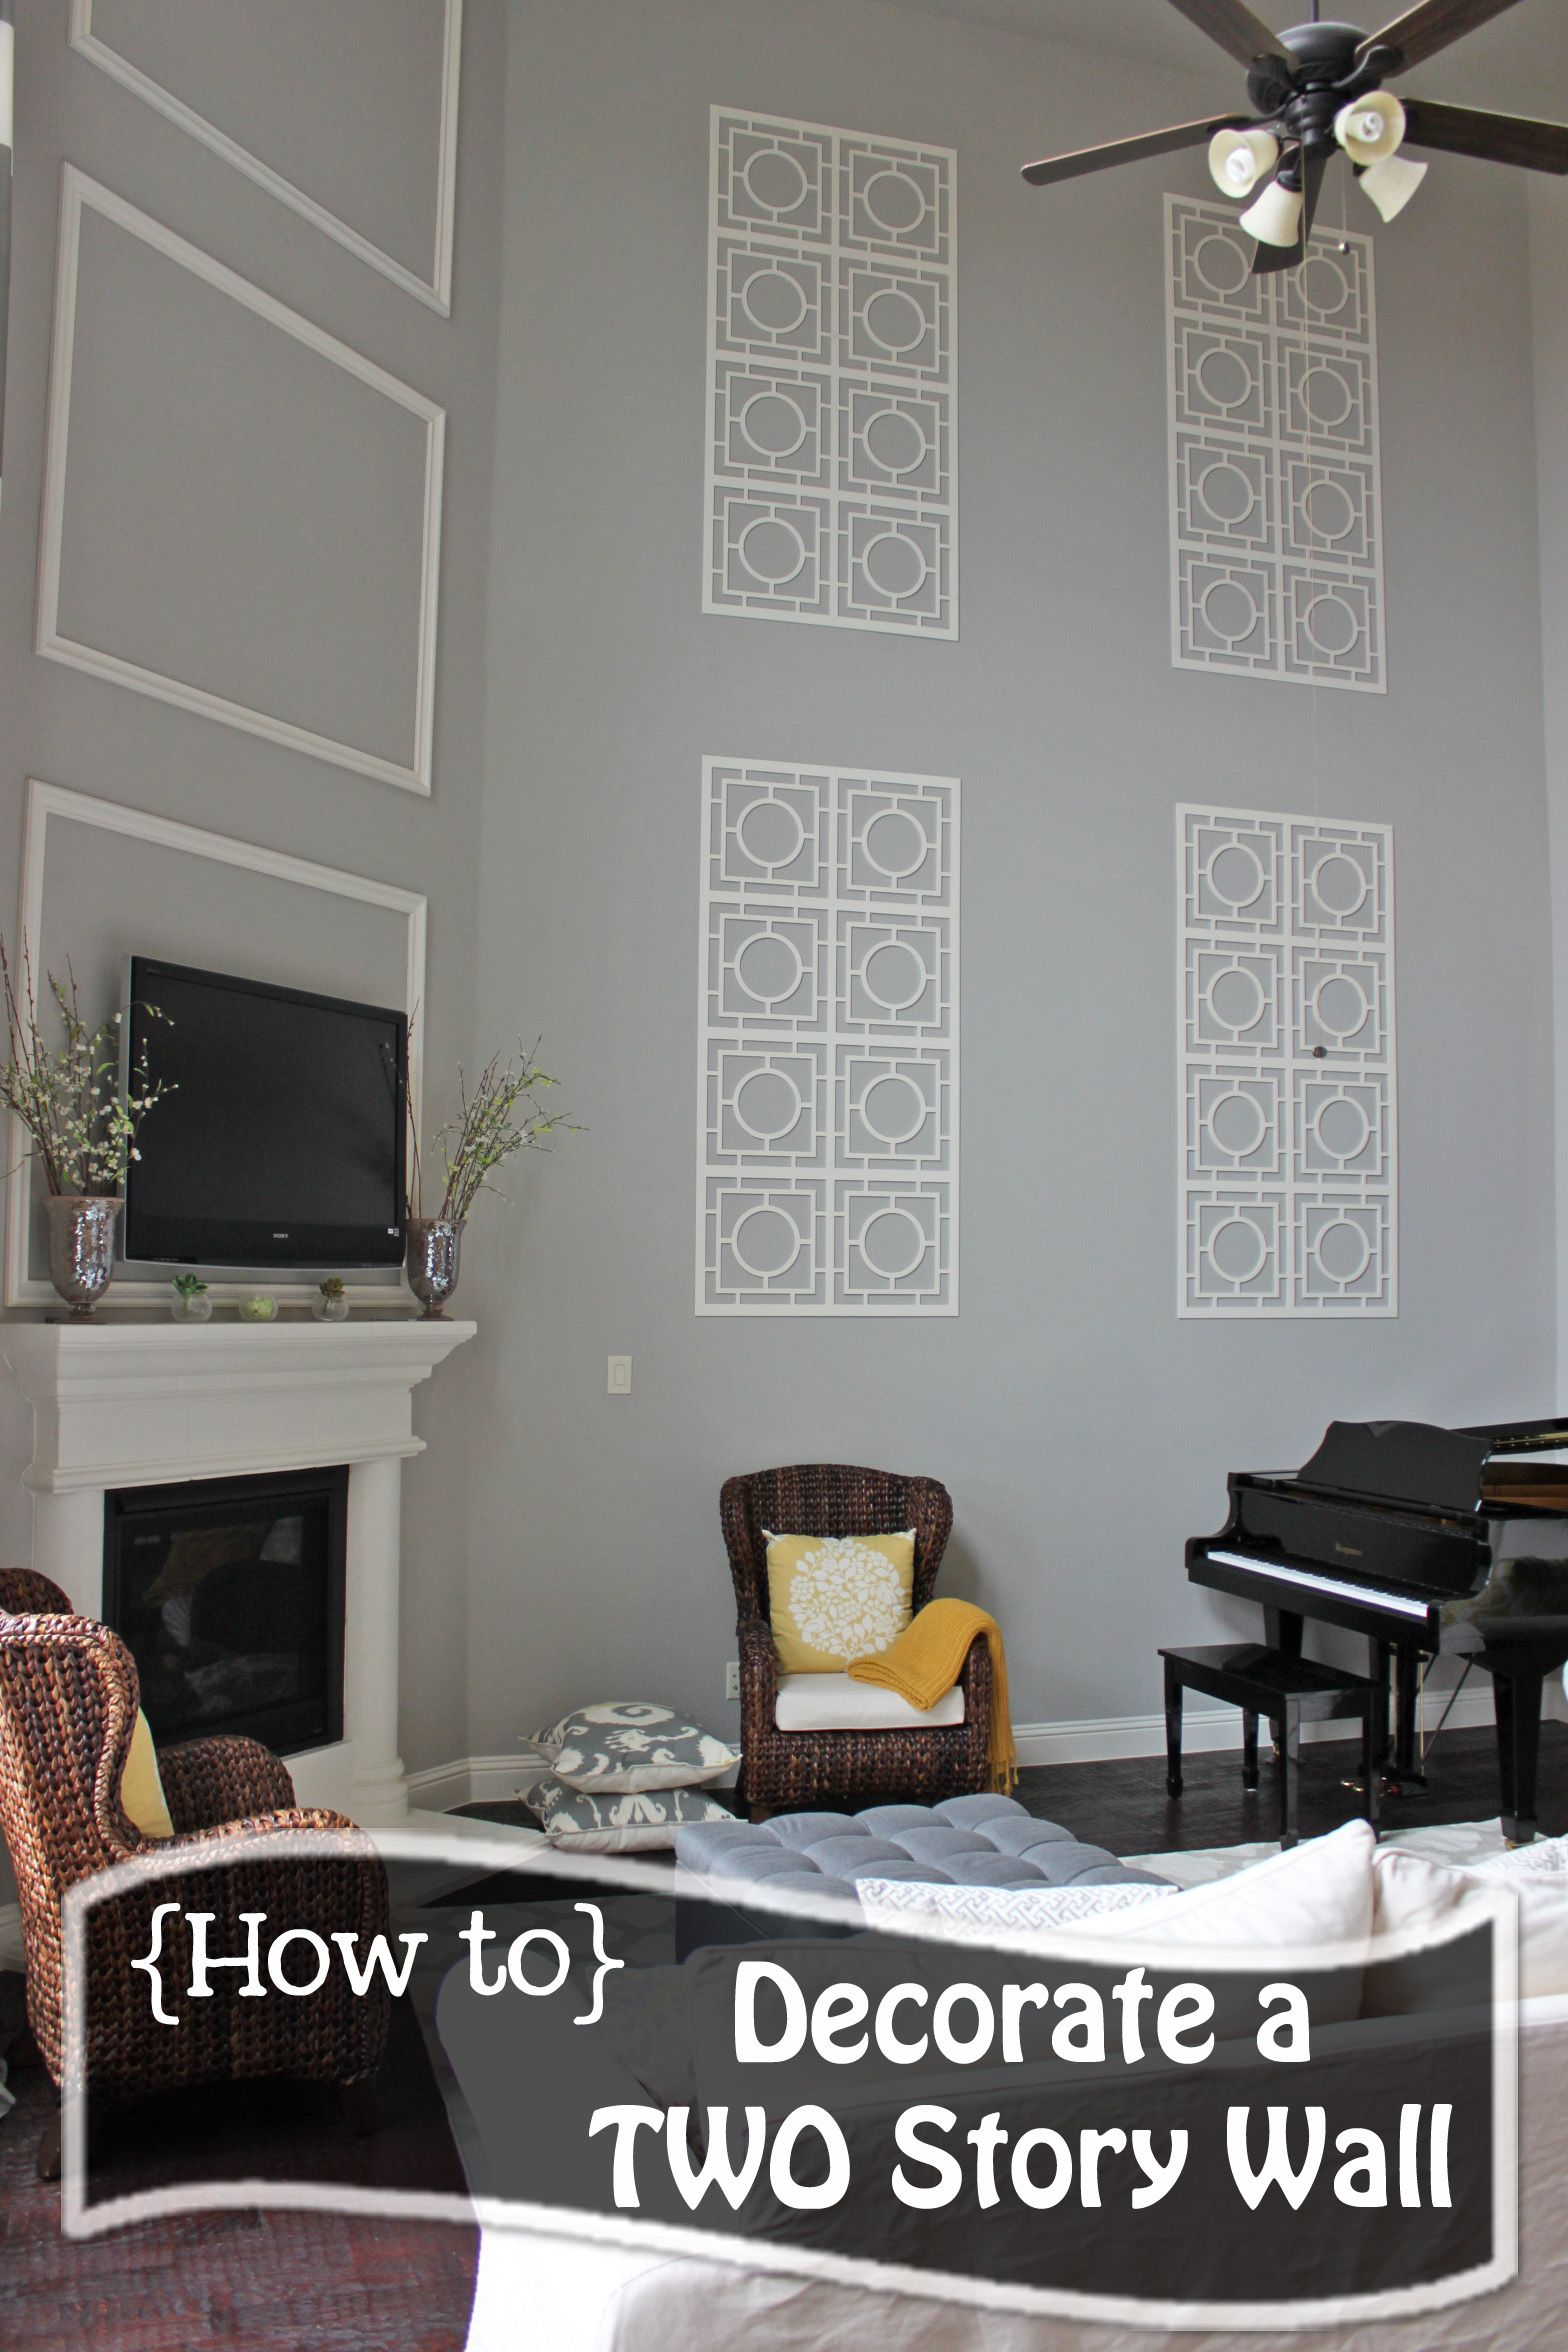 Living Room How To Decorate A 1000 ideas about decorating tall walls on pinterest 2 story how to decorate a two wall what do with those crazy walls